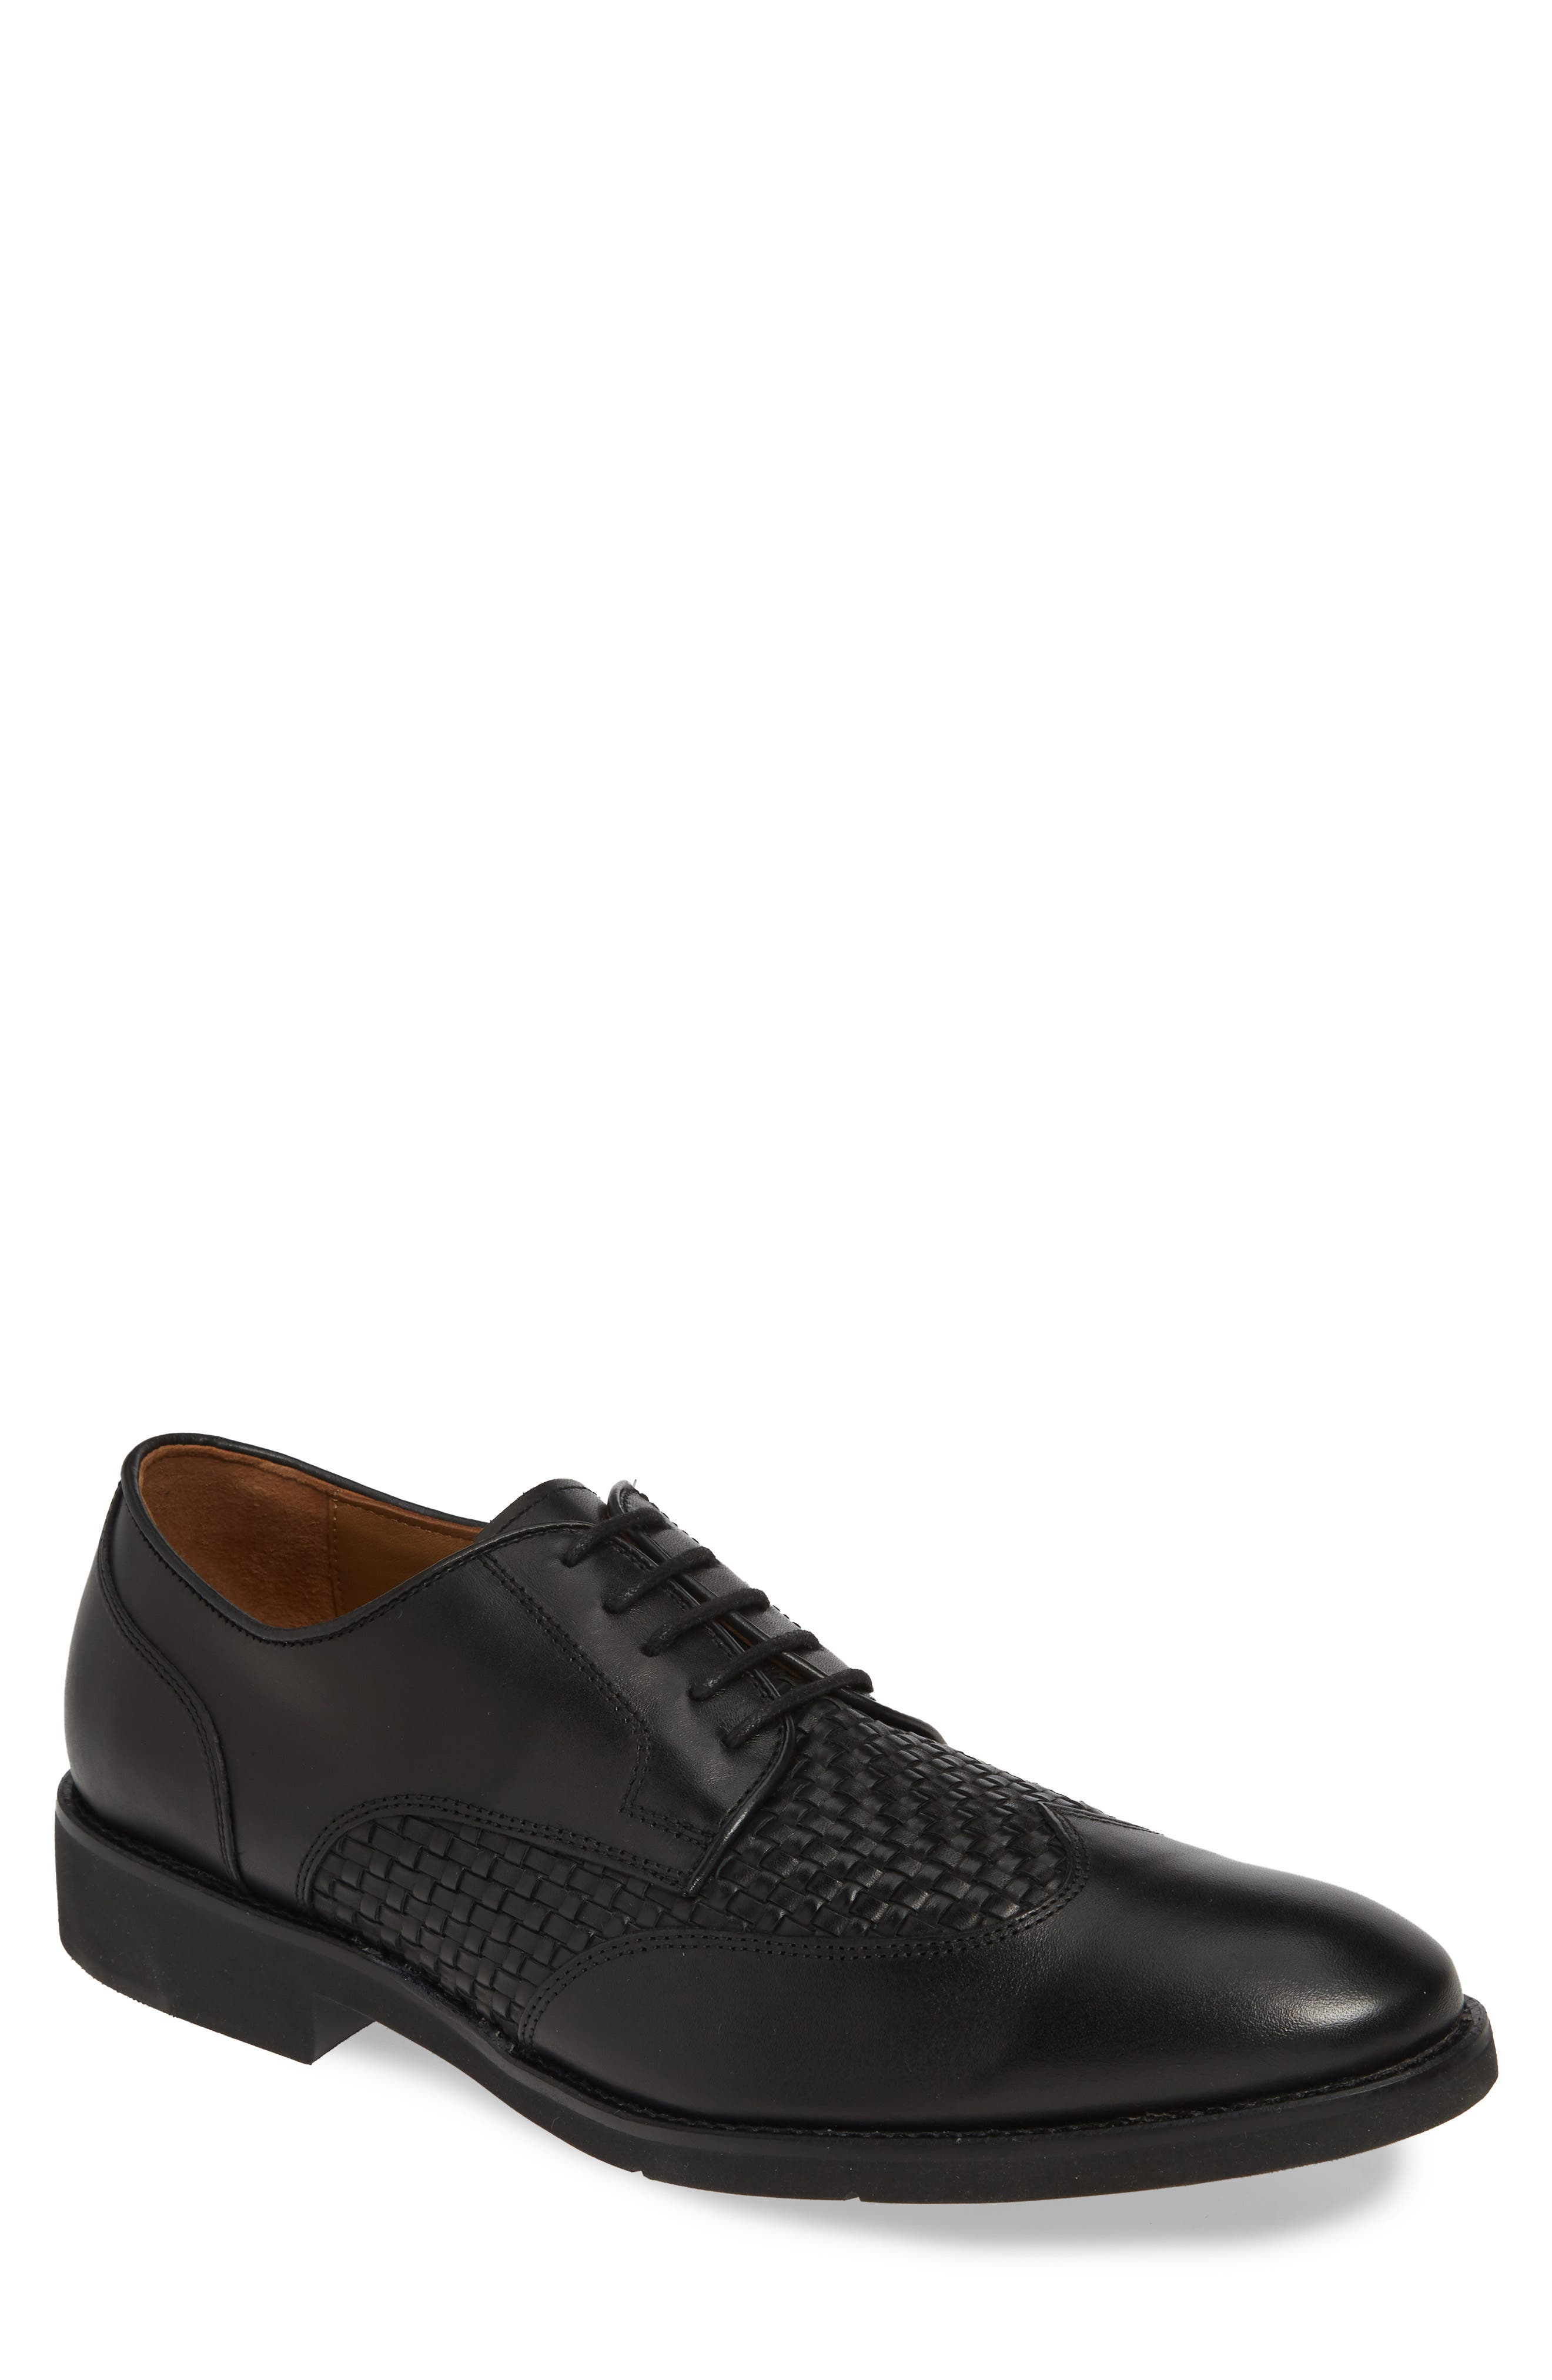 JOHNSTON & MURPHY, Carlson Woven Wingtip Derby, Main thumbnail 1, color, BLACK LEATHER